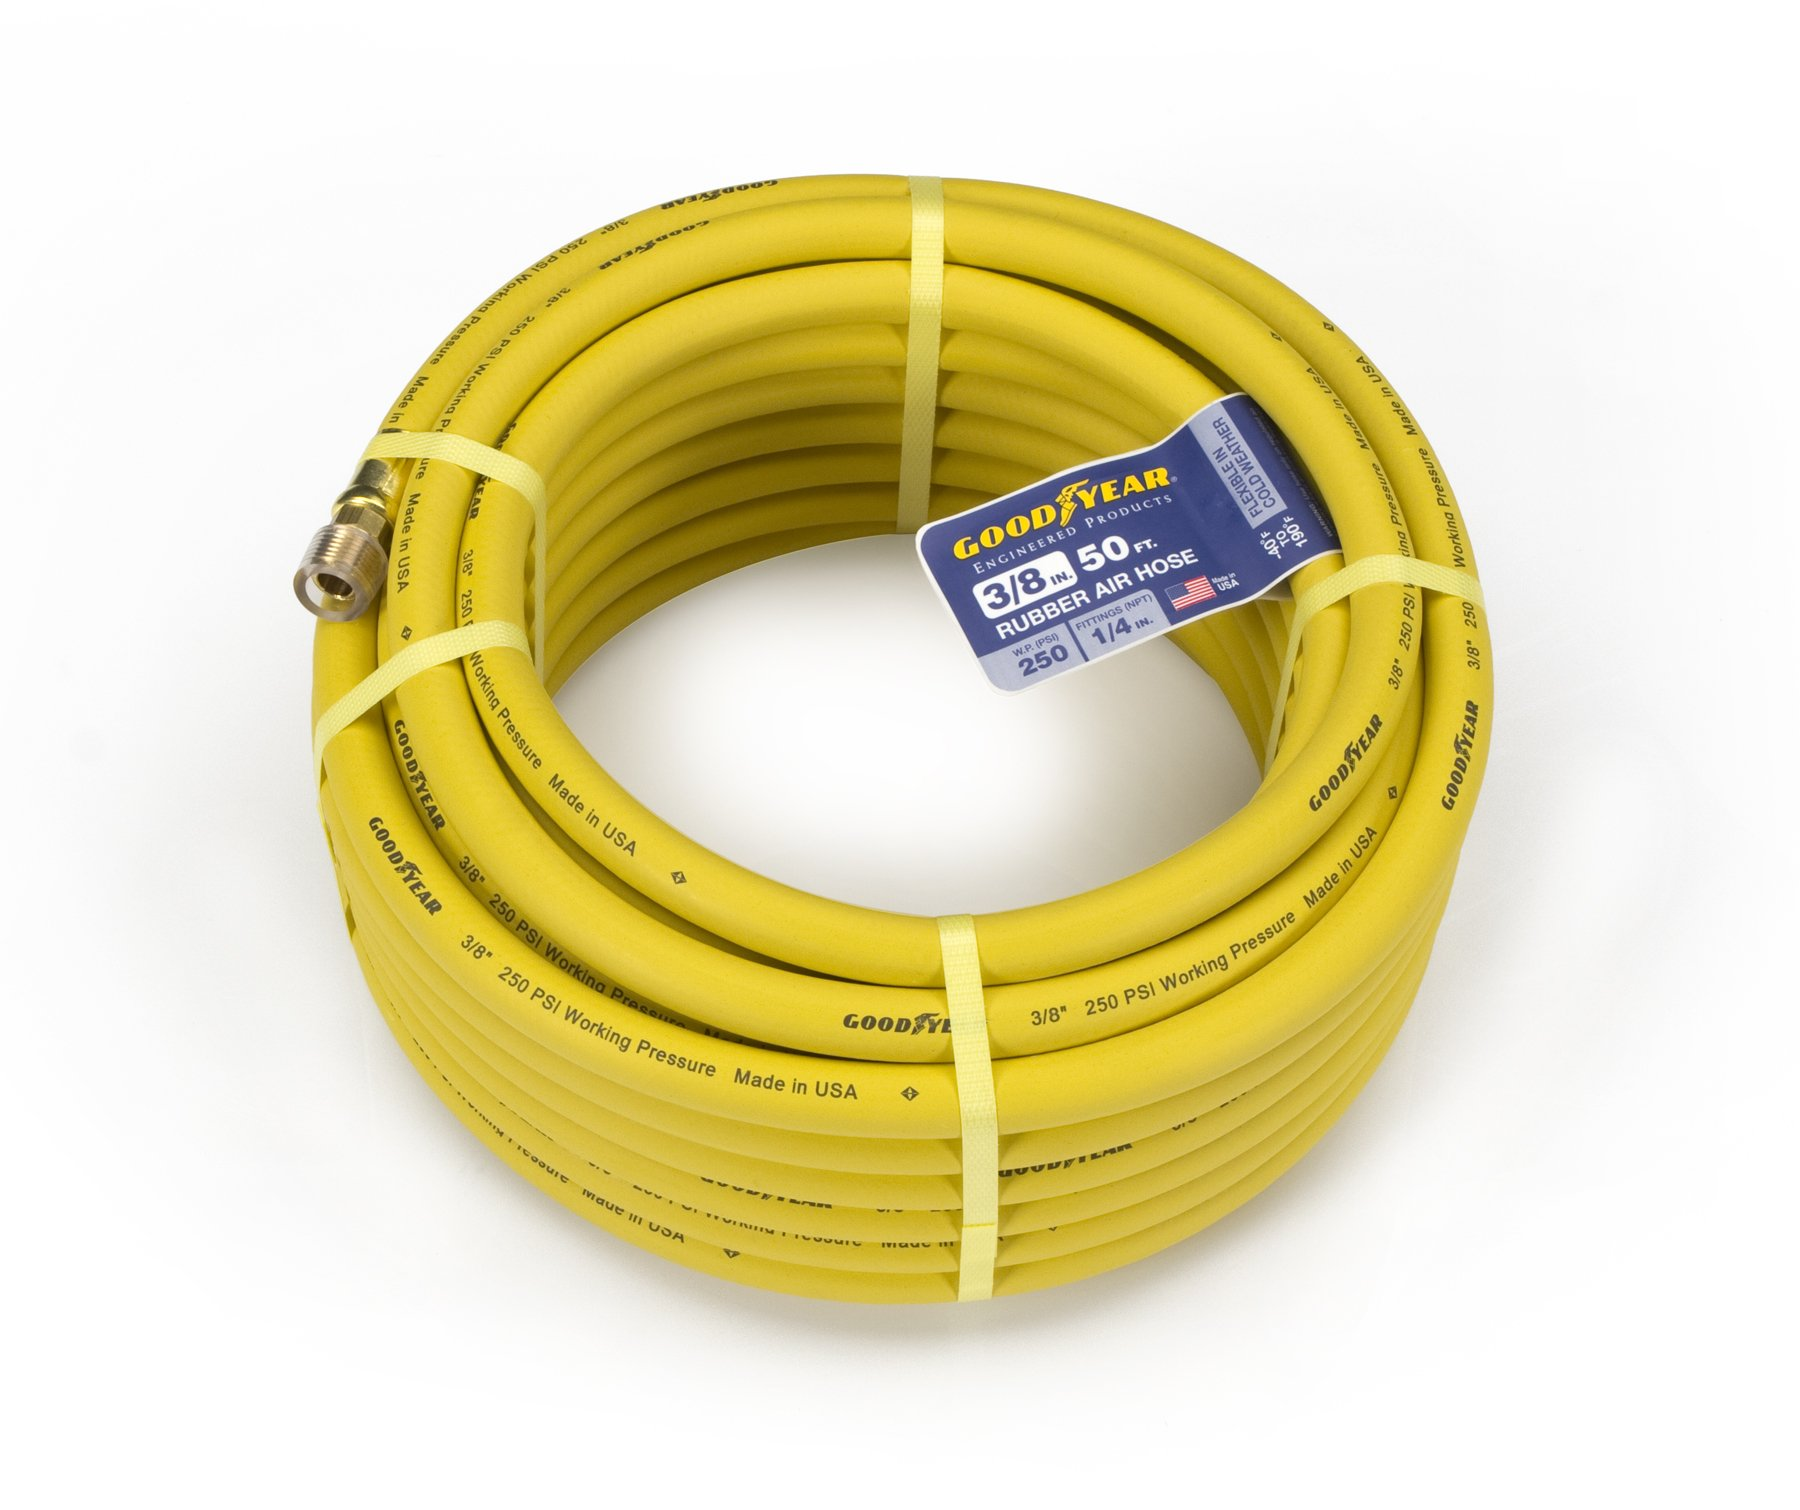 Goodyear EP 46502 3/8-Inch by 50-Feet 250 PSI Rubber Air Hose with 1/4-Inch MNPT Ends | 0020209465028 - Buy new and used Home Improvements books and more ...  sc 1 st  BIGWORDS.com & Goodyear EP 46502 3/8-Inch by 50-Feet 250 PSI Rubber Air Hose with 1 ...